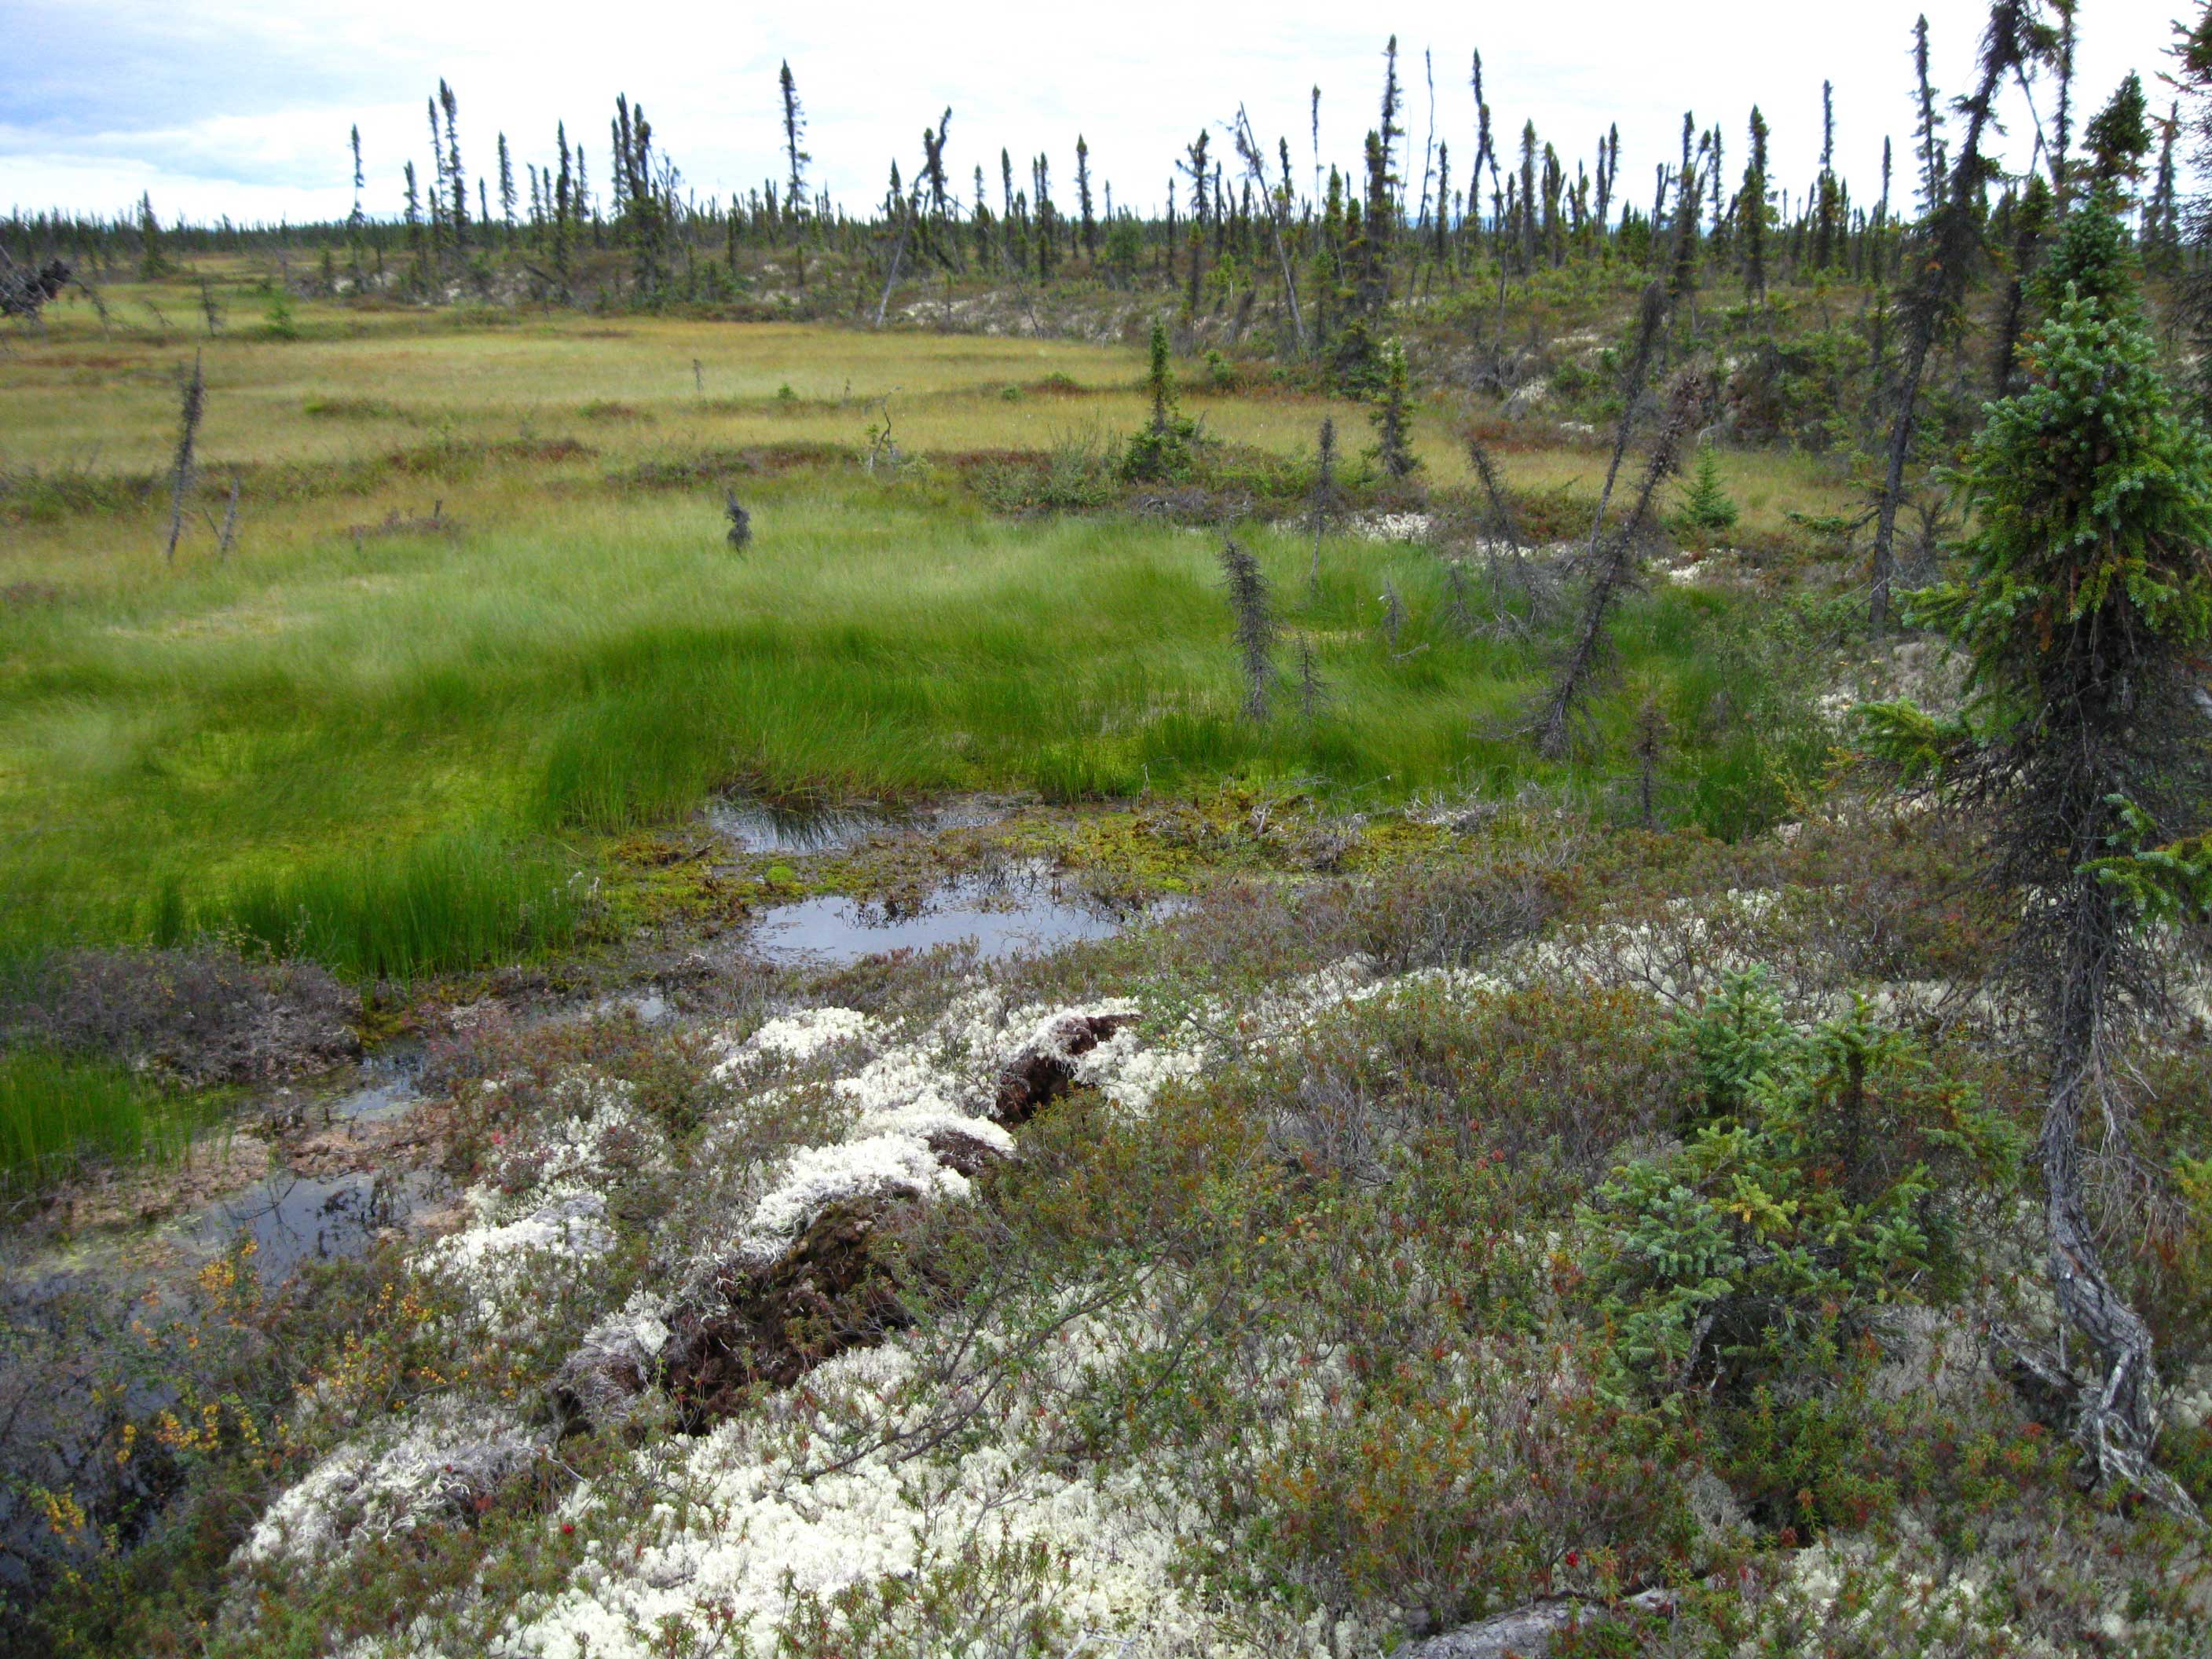 Forested permafrost degrading in Alaska leaving behind carbon-emitting wetlands. Image credit: Jennifer Harden